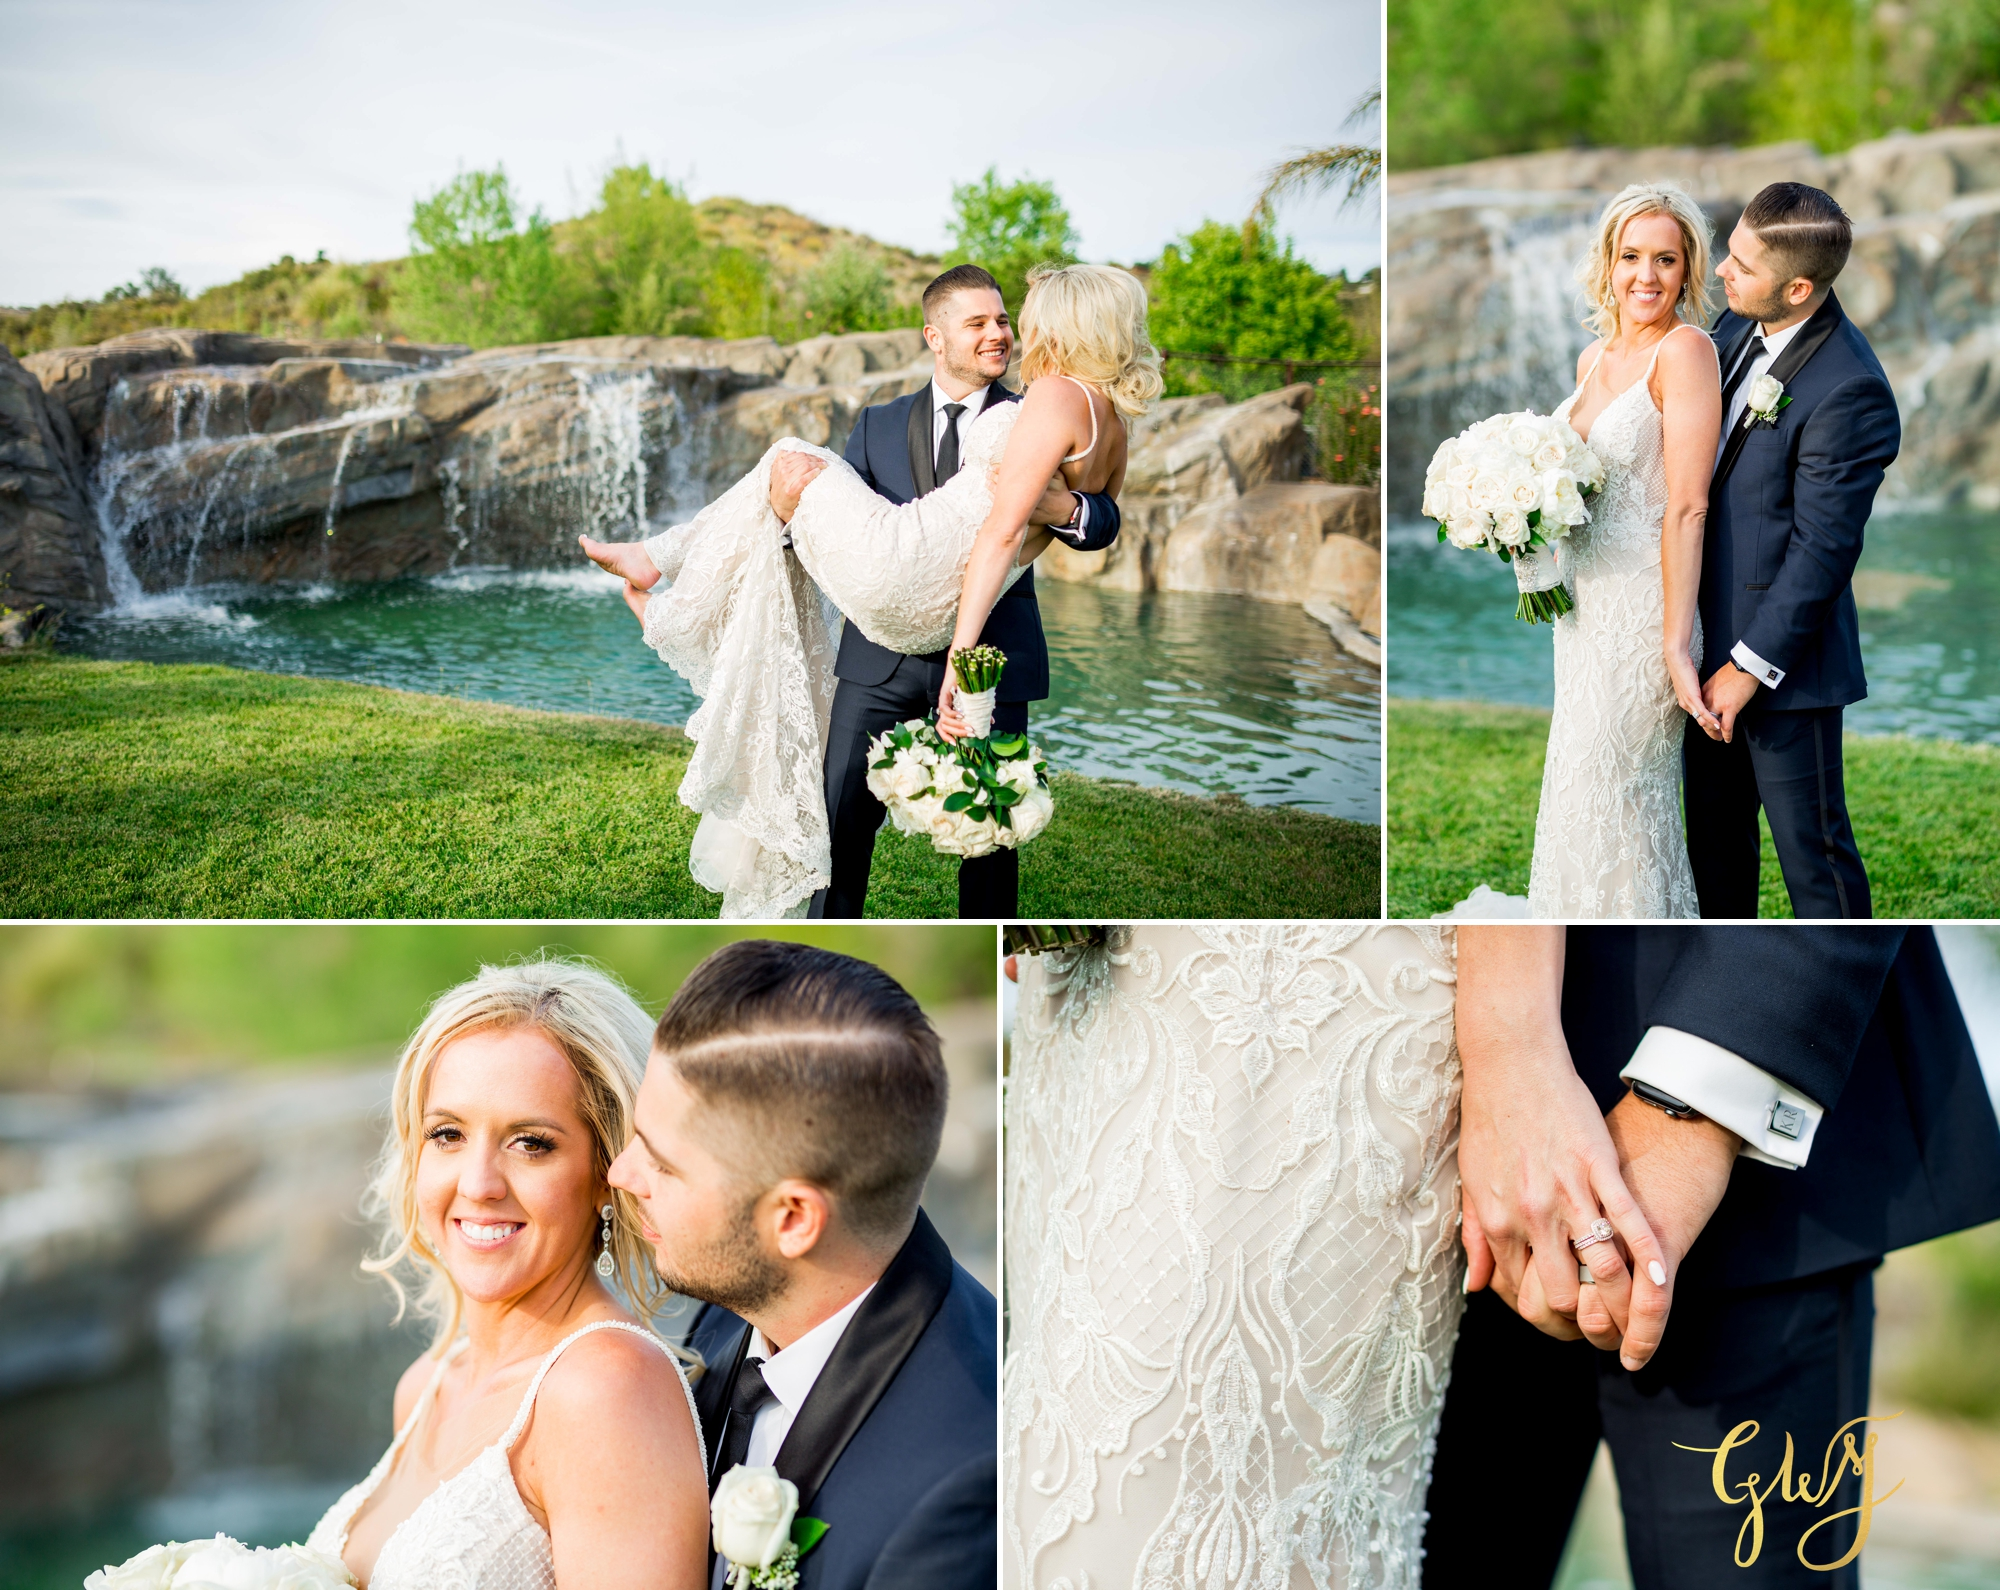 Kristen + Krsto's Romantic Temecula Winery Spring Wedding by Glass Woods Media 40.jpg